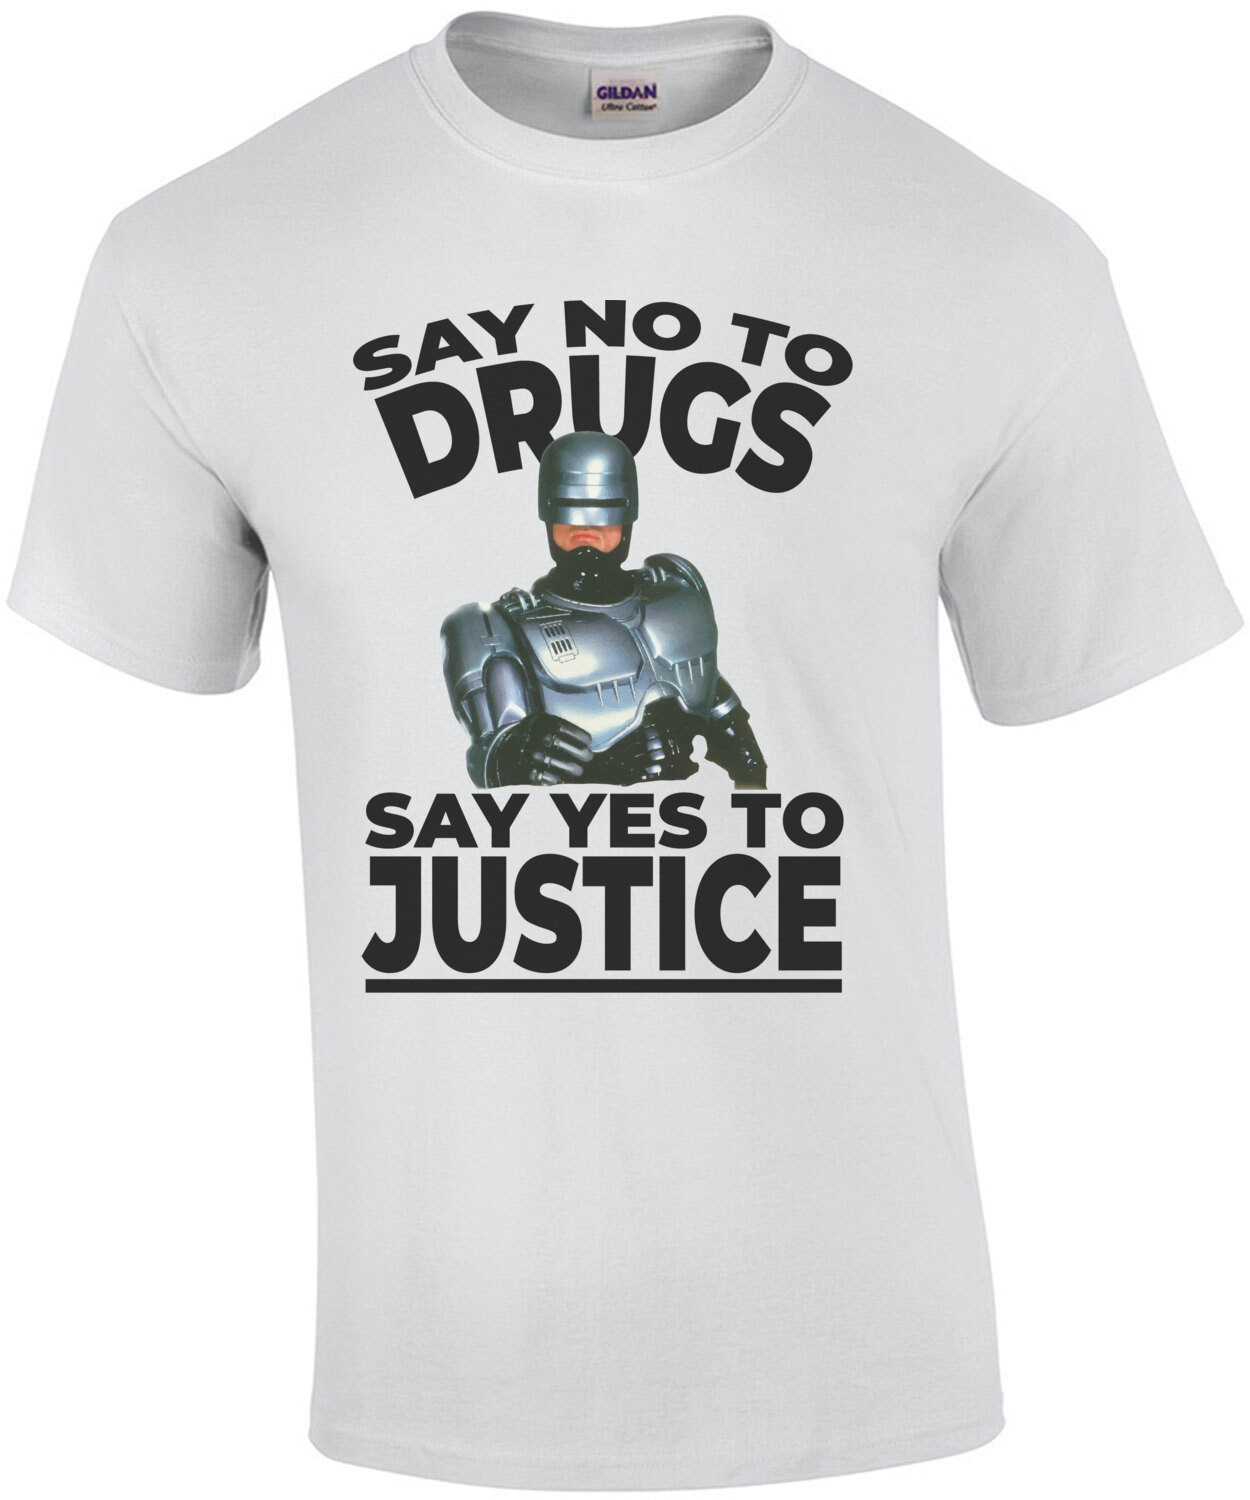 Say no to drugs - say yes to justice - Robocop - 80's T-Shirt